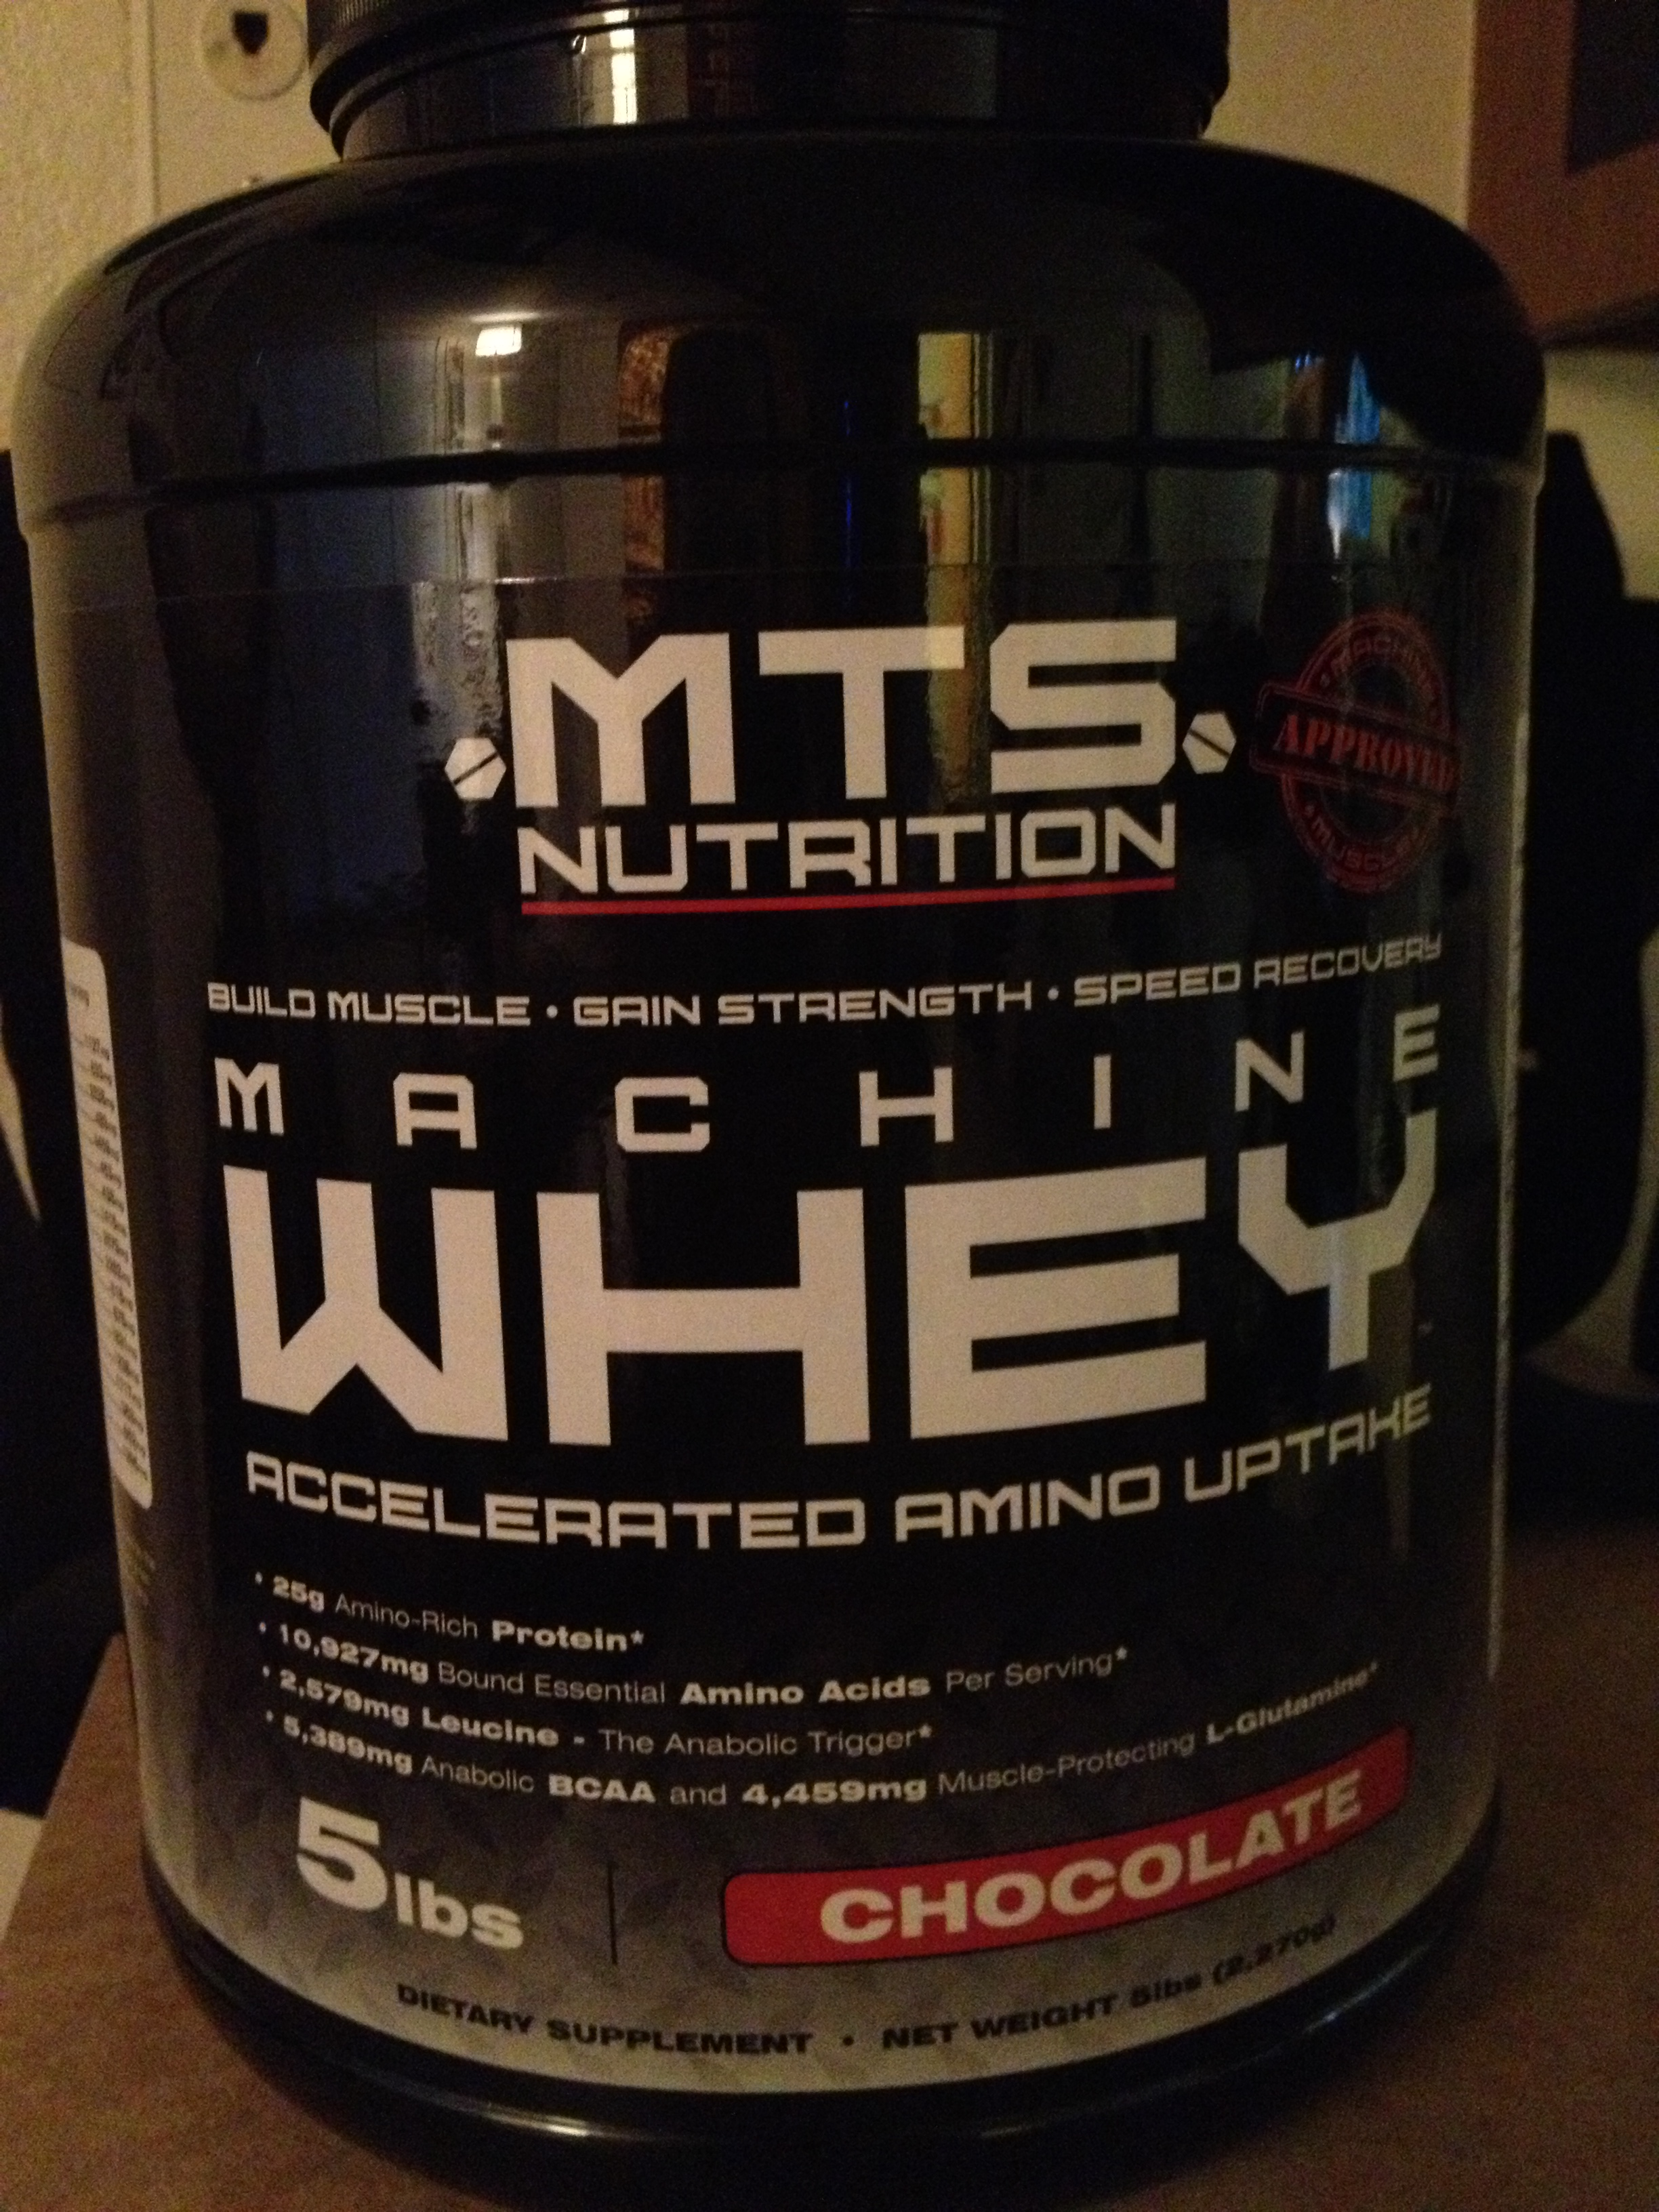 The protein I'm using